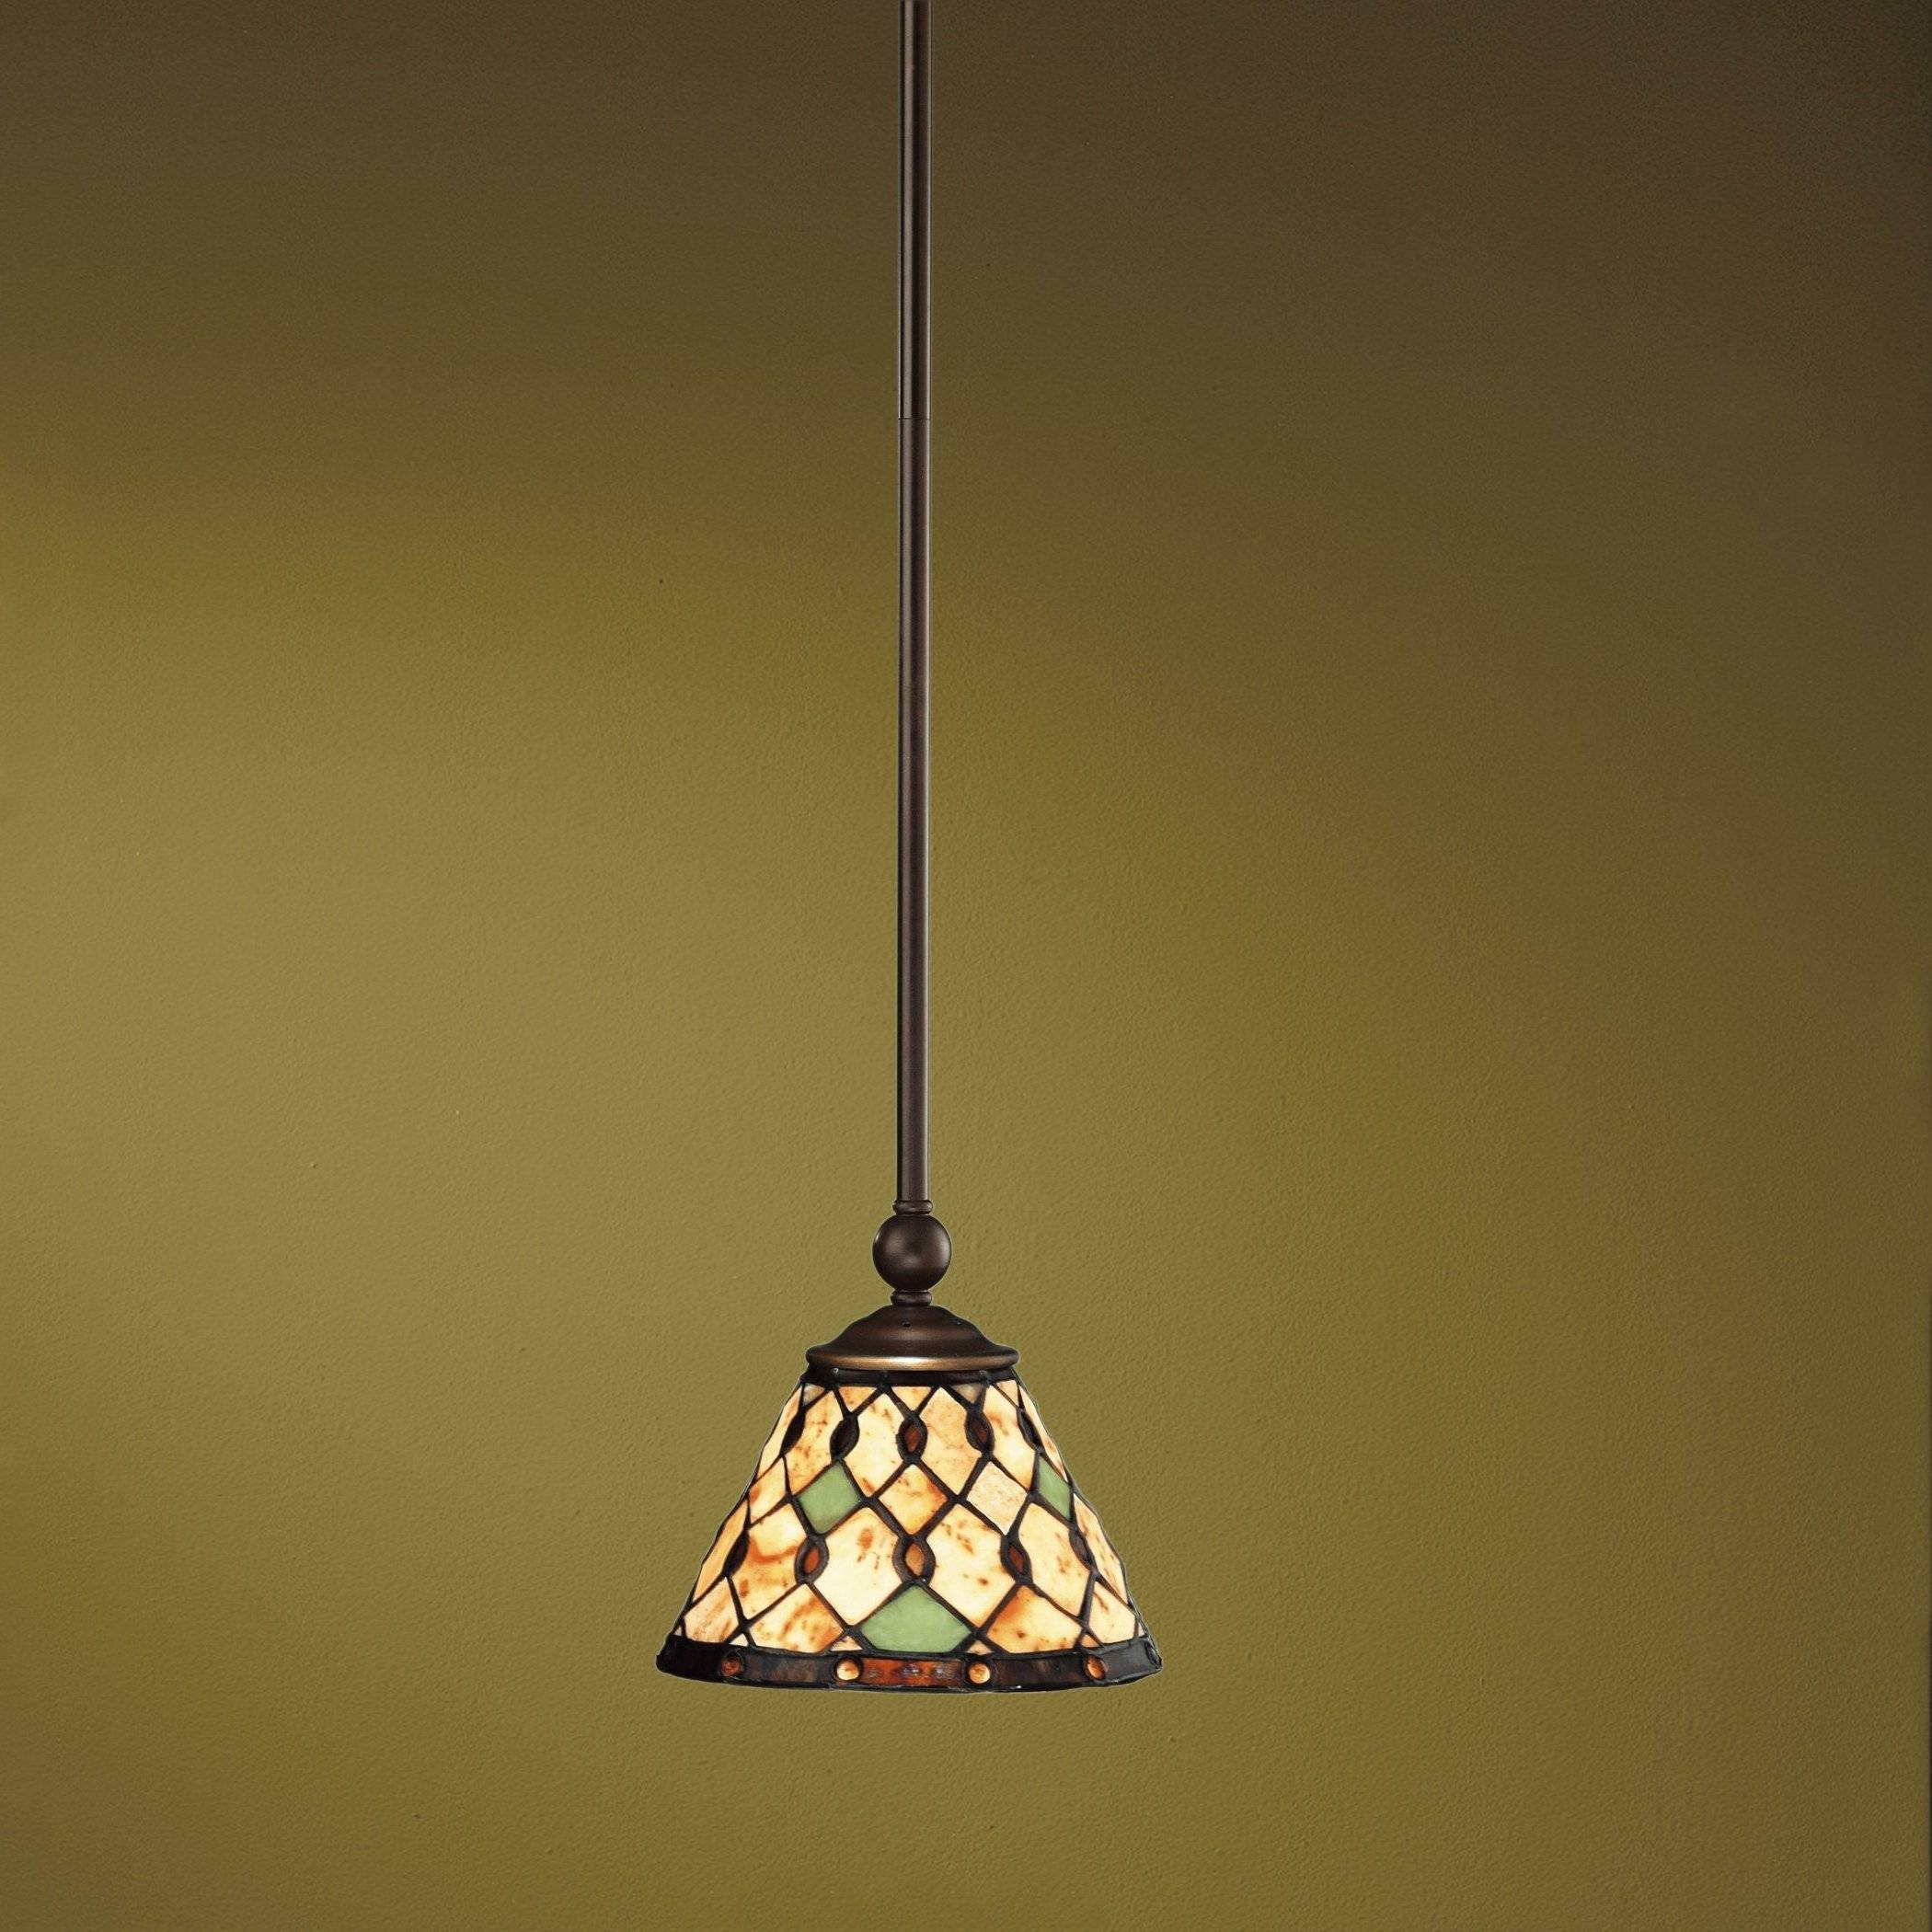 Tiffany Style Hanging Light Fixture, Tiffany Glass Hanging Lamps Pertaining To Tiffany Style Pendant Light Fixtures (View 11 of 15)